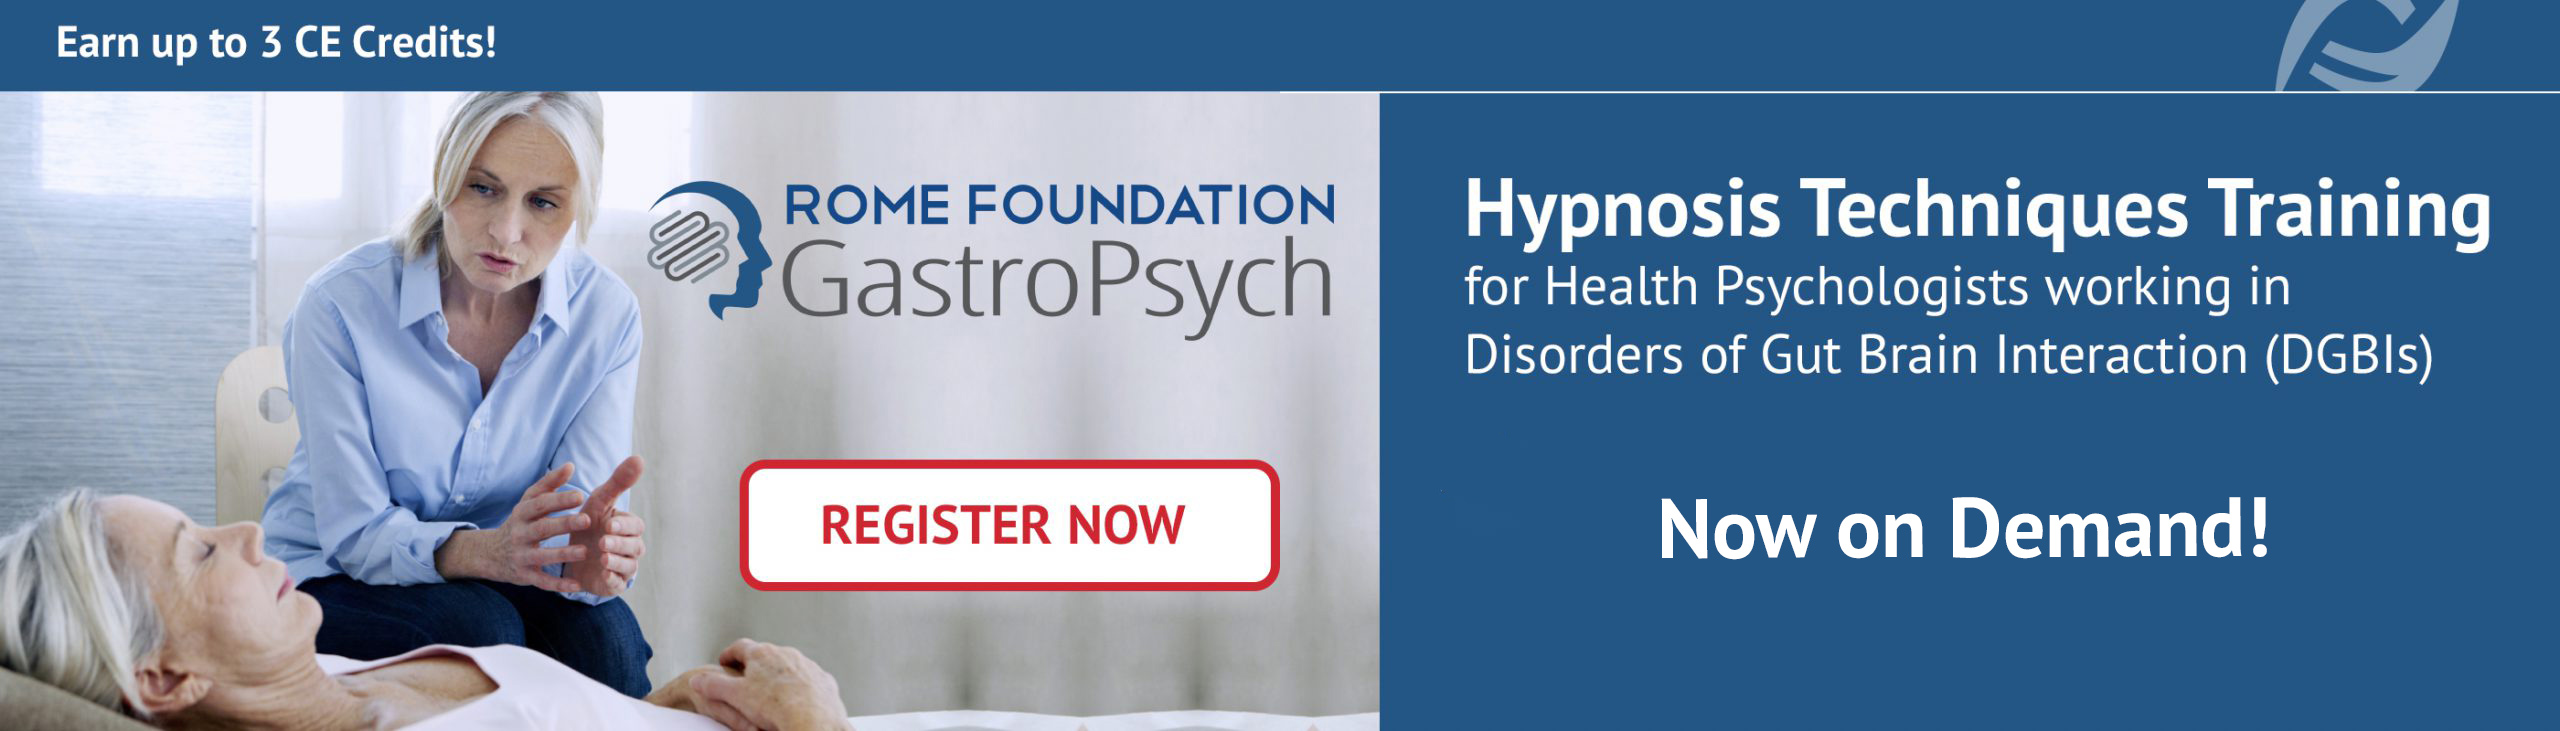 New_gastropsych-hypnosis-event On Demand